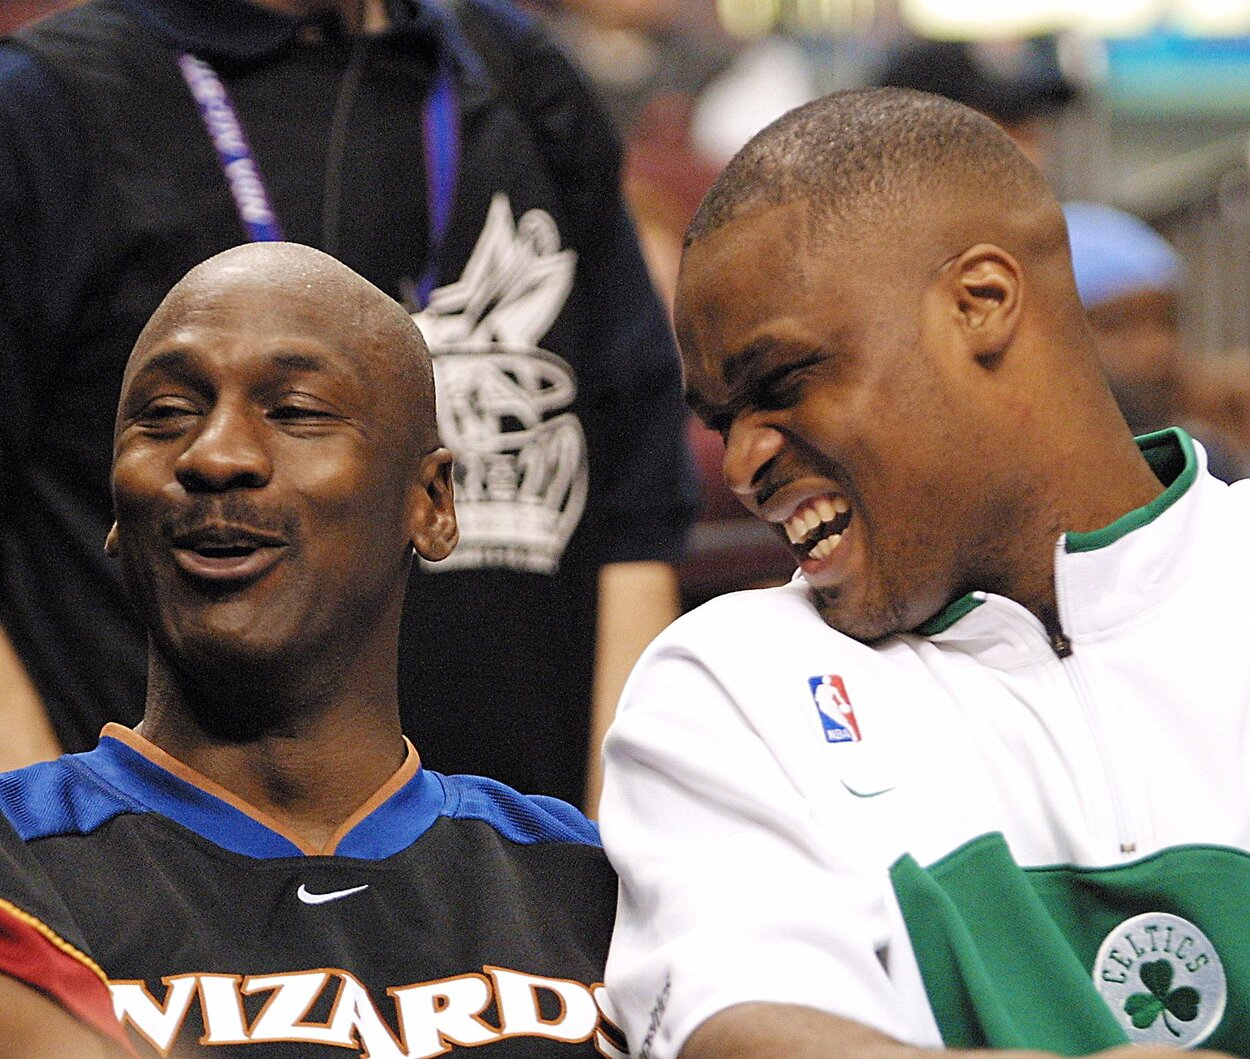 Michael Jordan Would Likely Prefer You Forget His Epic Failure From the 2002 All-Star Game